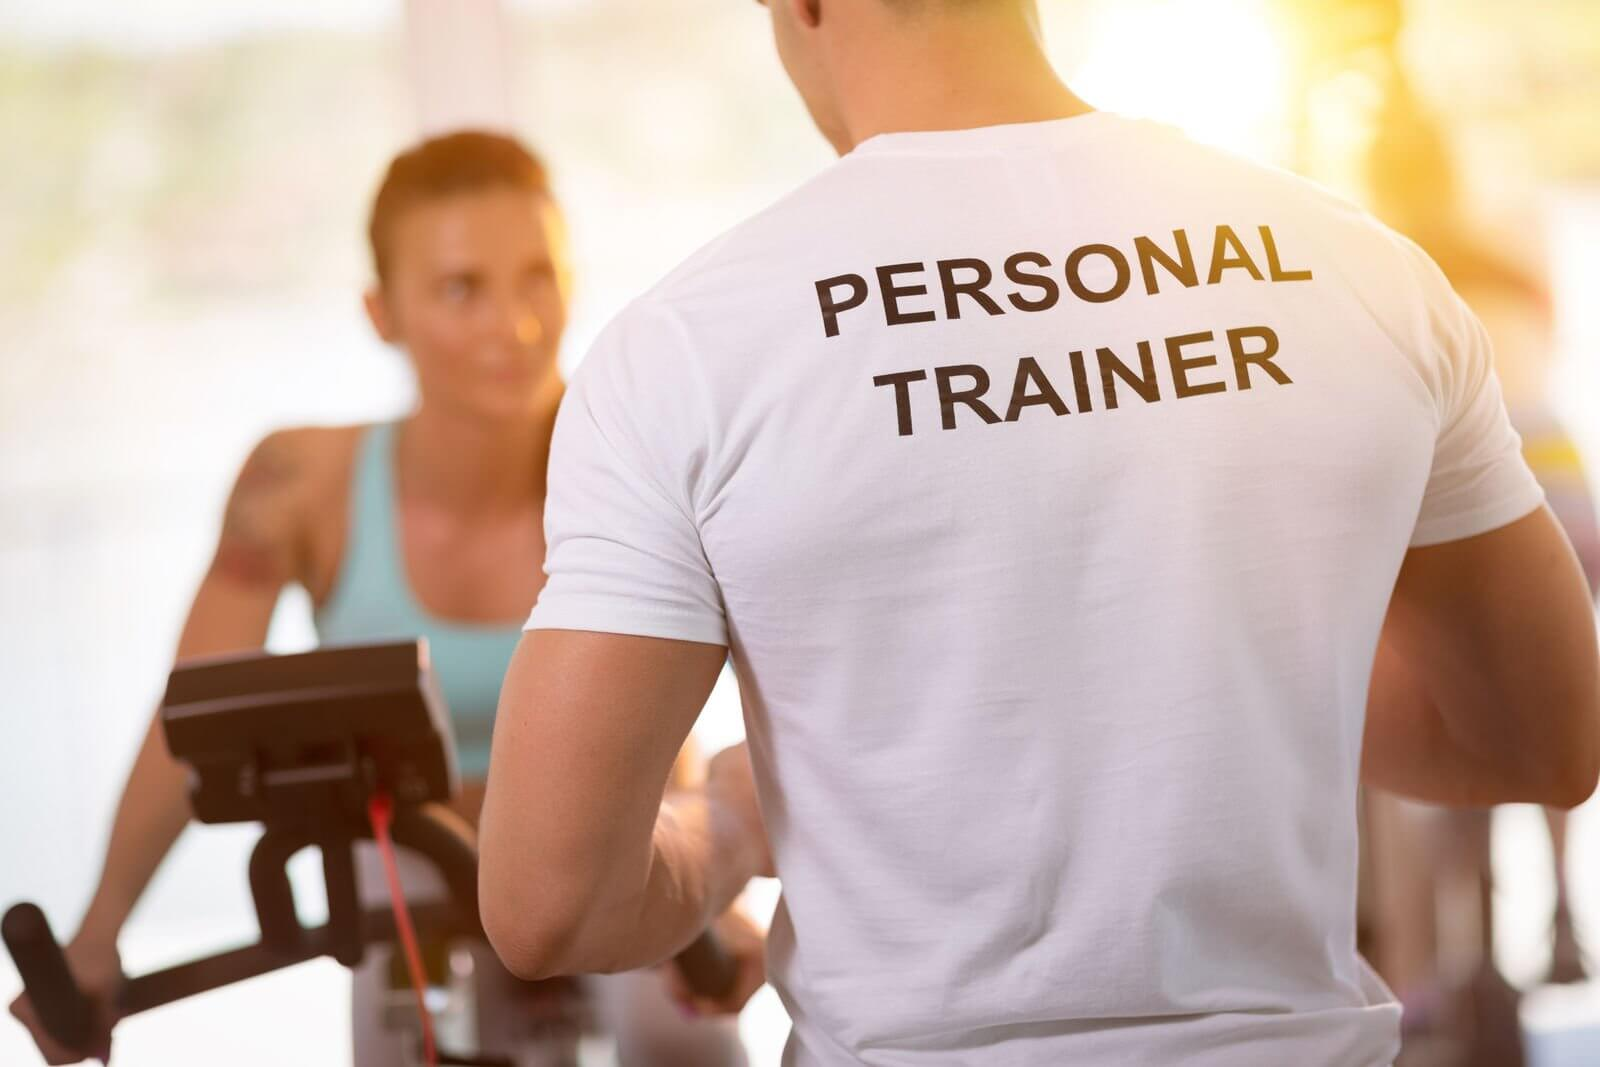 How to Get Certified as a Personal Trainer